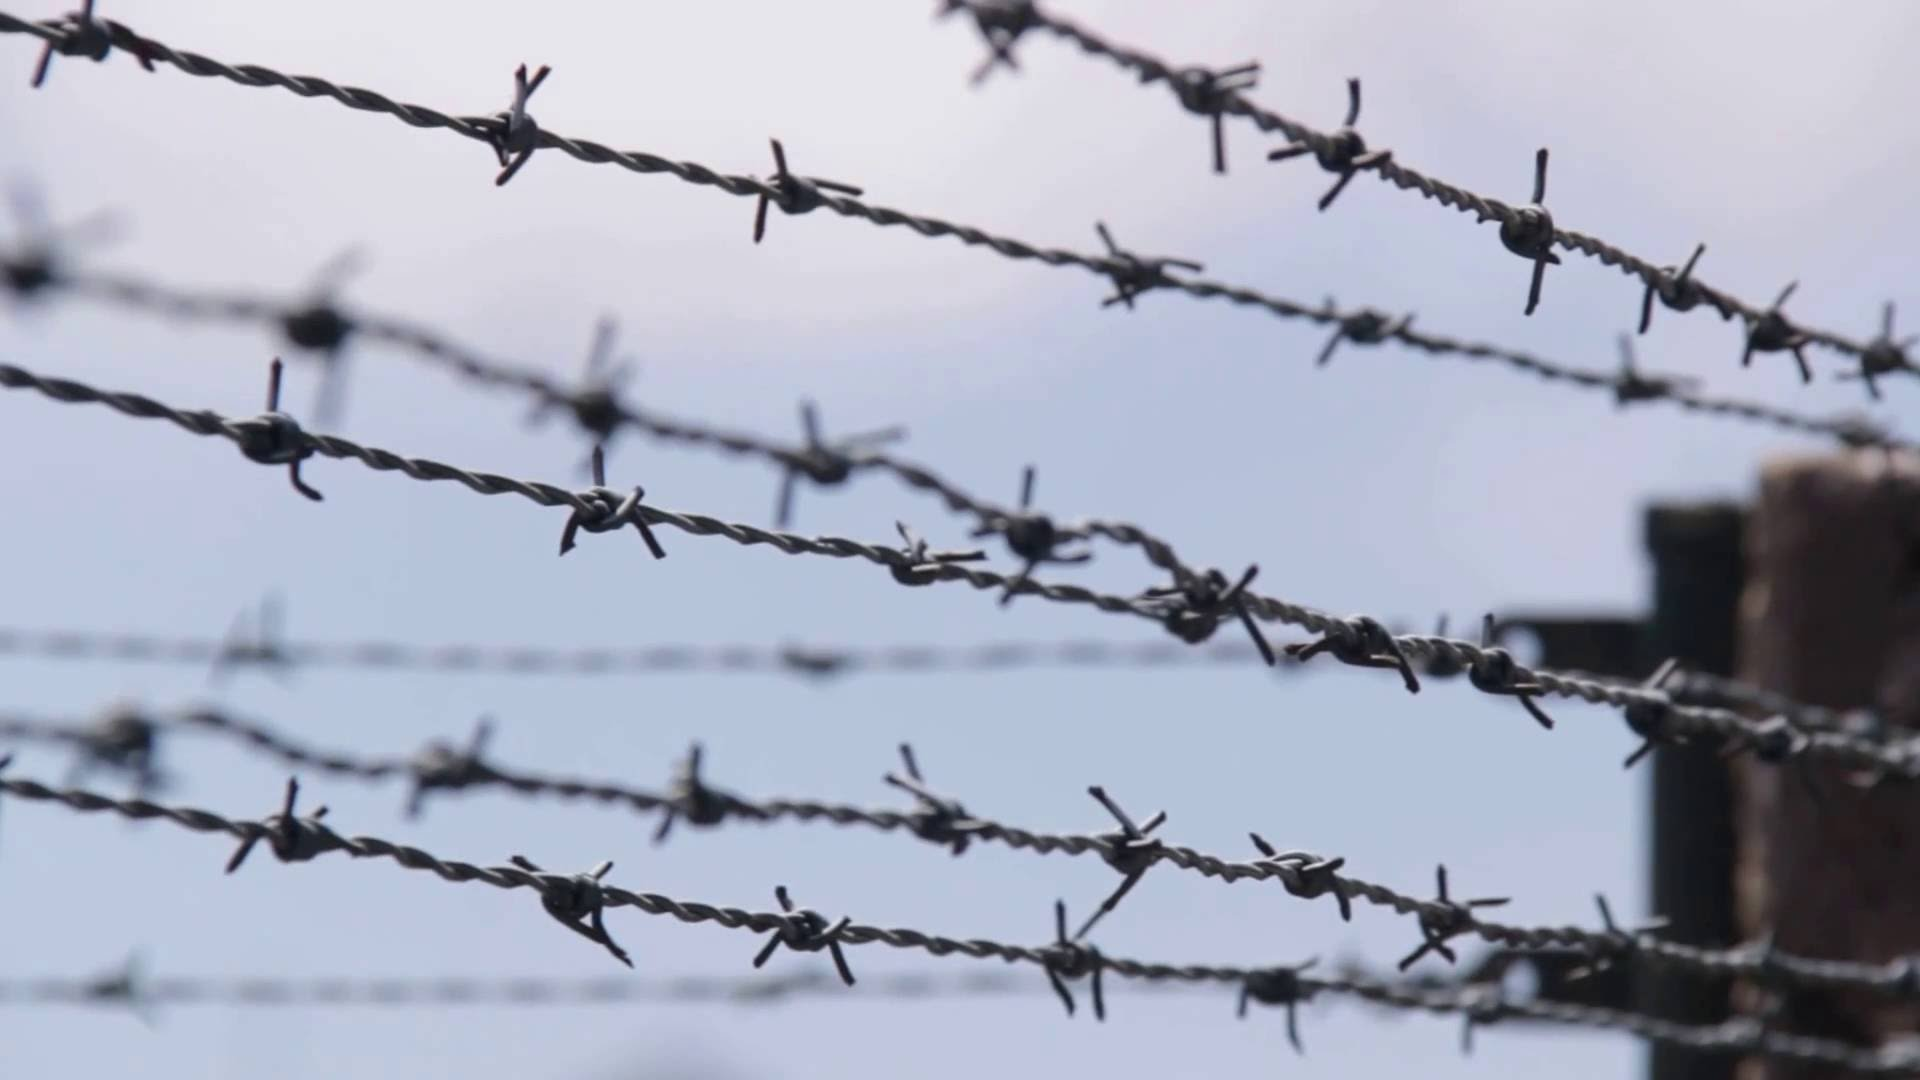 Barbed Wire Group (54+)